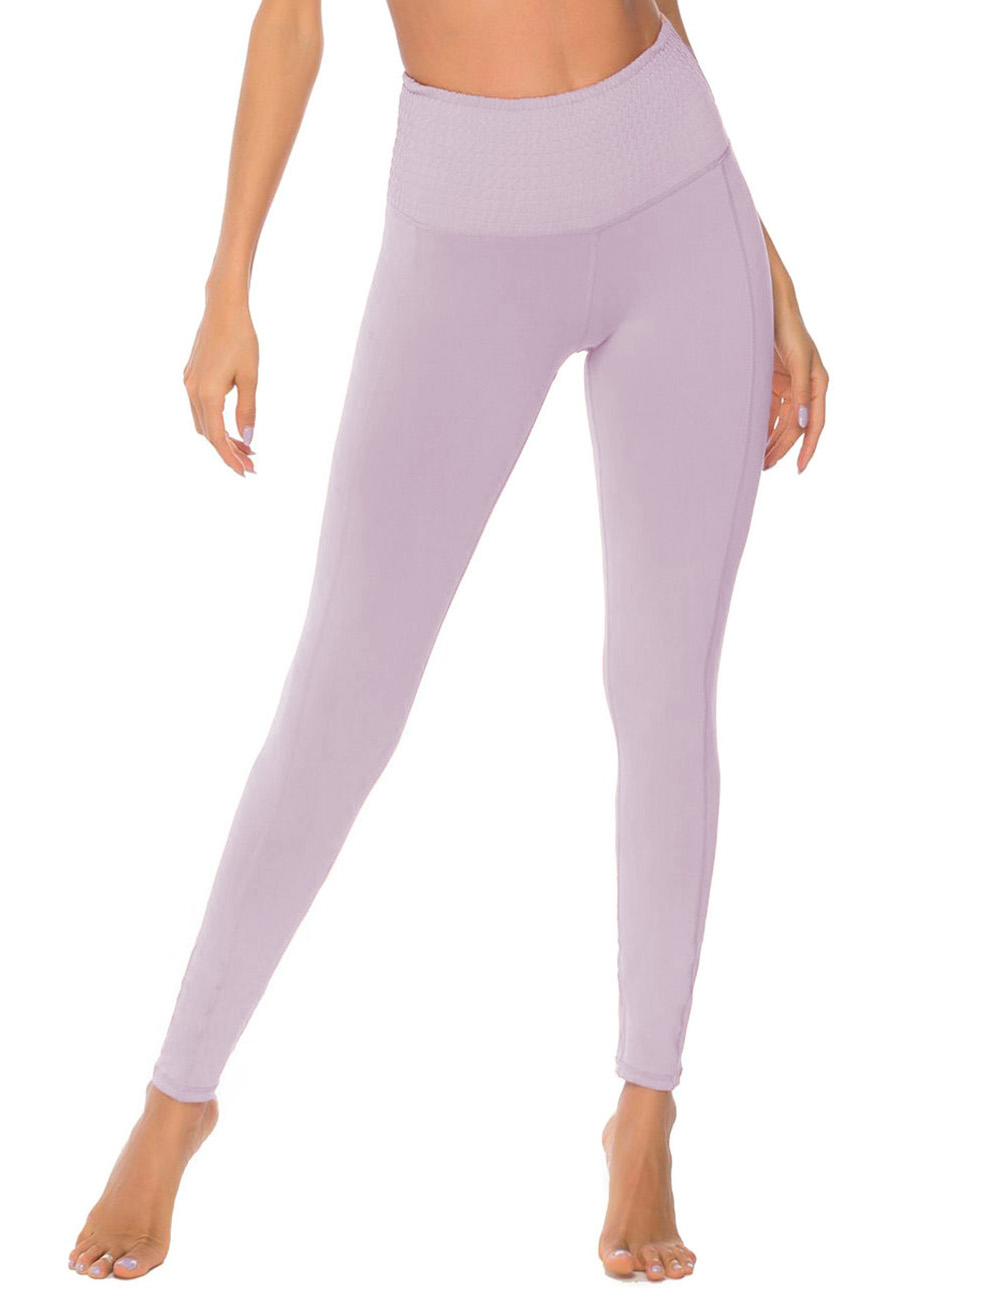 //cdn.affectcloud.com/hexinfashion/upload/imgs/Sportswear/Yoga_Legging/YD190087-PL3/YD190087-PL3-201911025dbd2b408e062.jpg